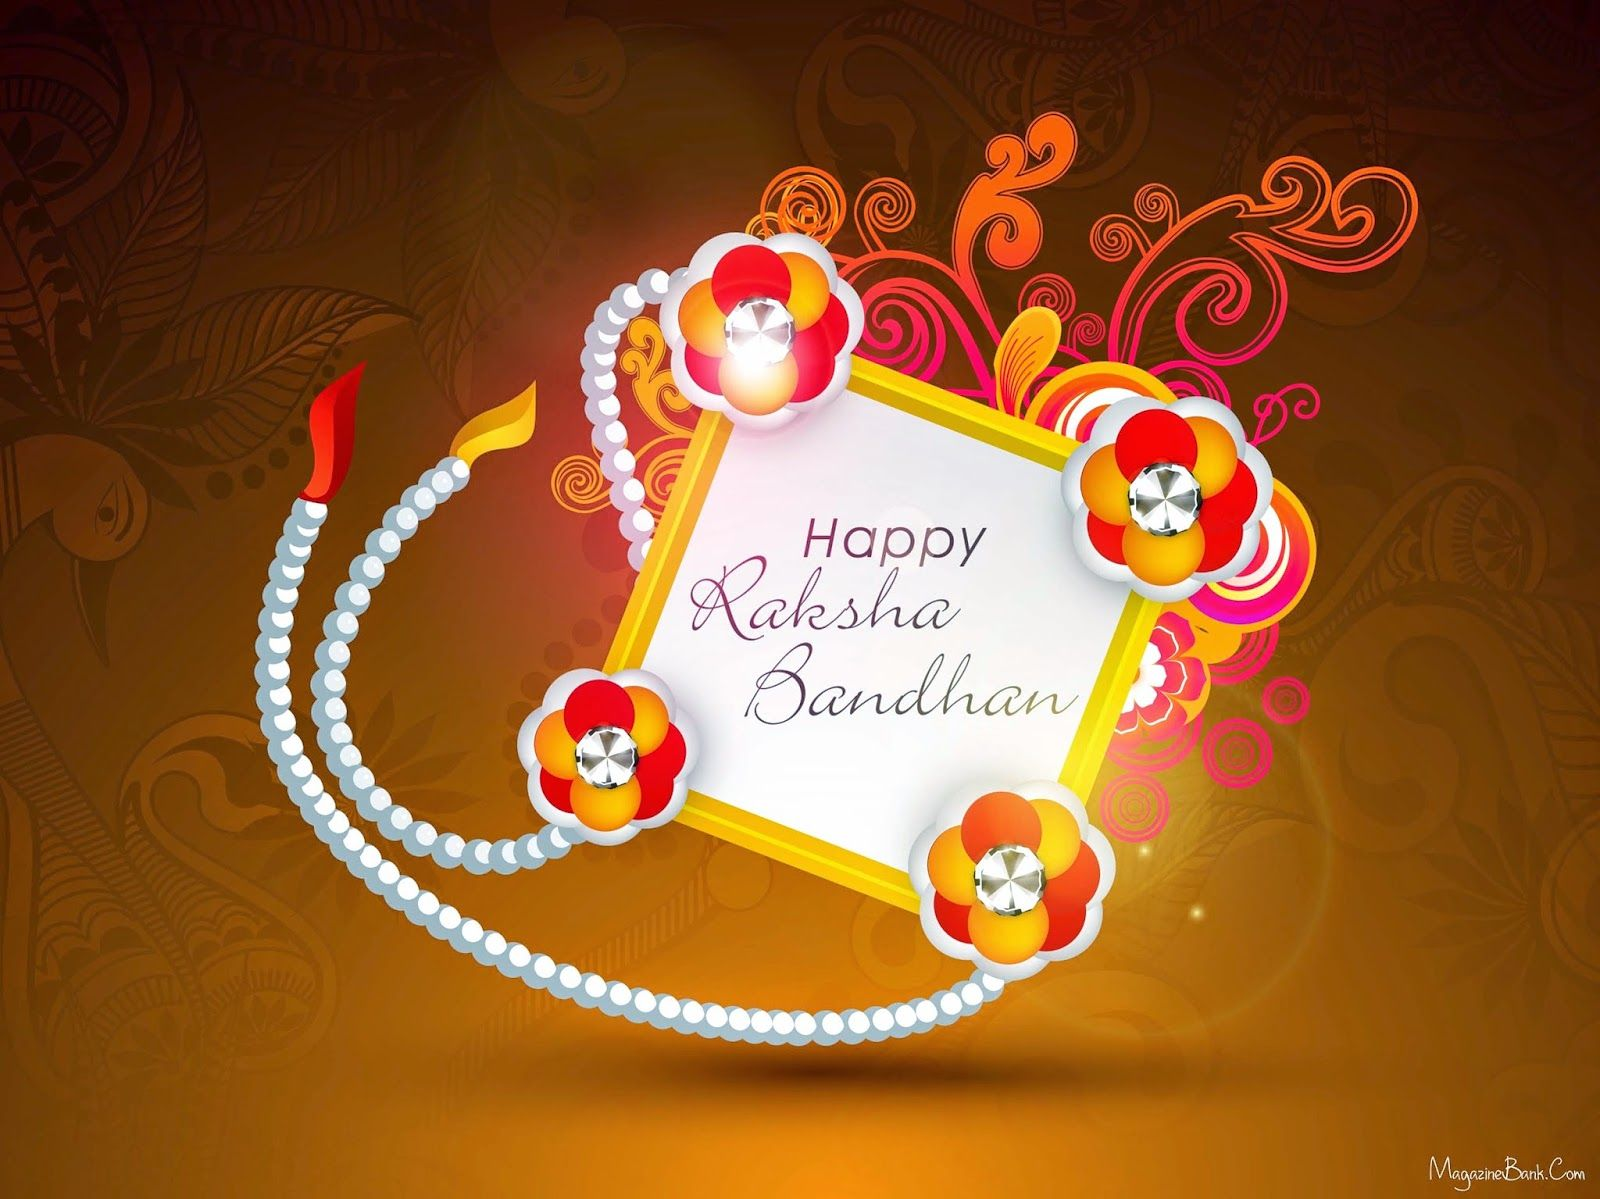 Happy raksha bandhan 123 greetings cards sms wishes poetry happy raksha bandhan 123 greetings cards sms wishes poetry kristyandbryce Image collections